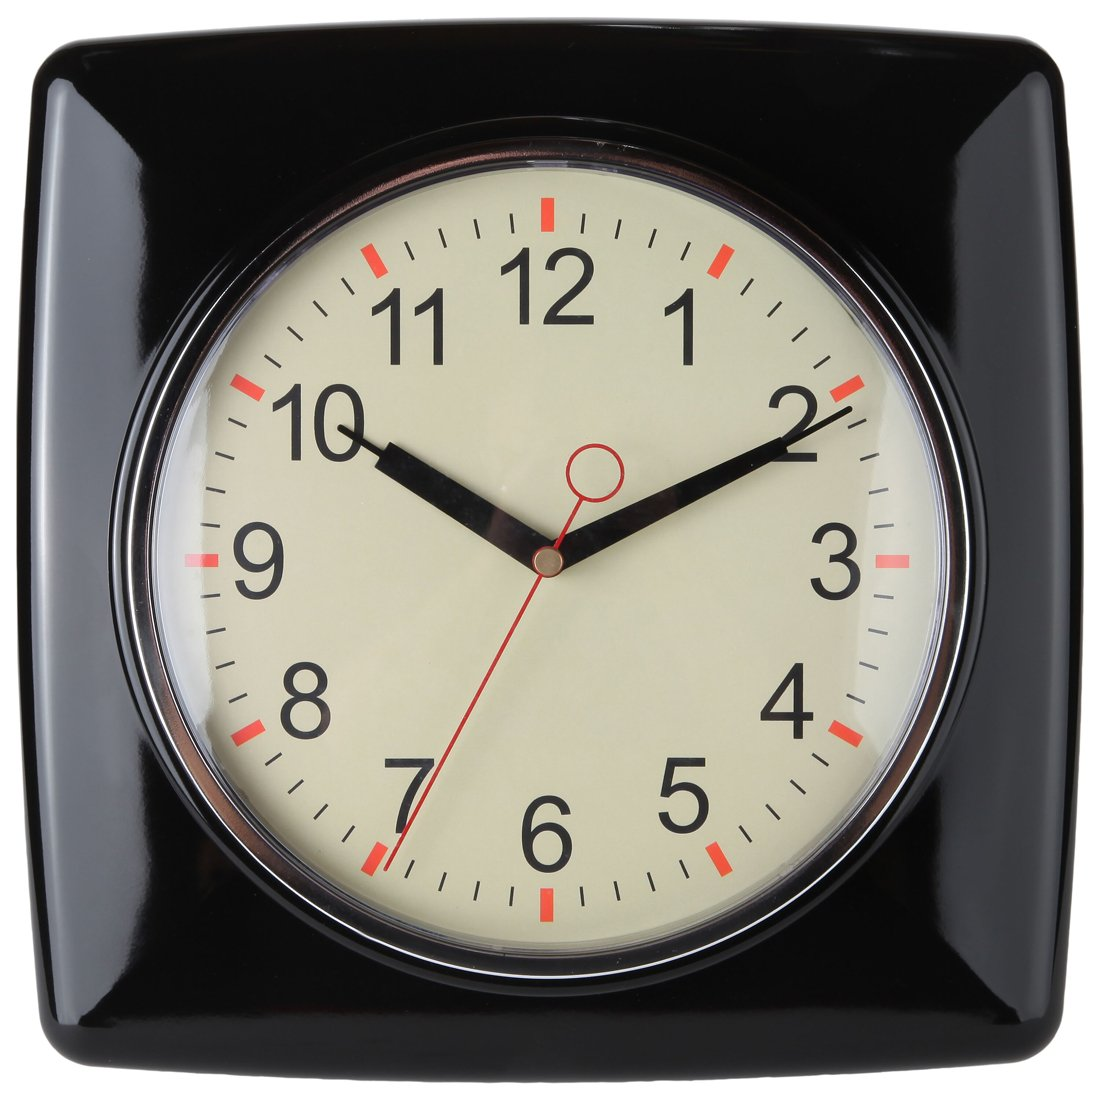 Lily's Home Square Retro Kitchen Wall Clock, Large Dial Quartz Timepiece, Black, 11